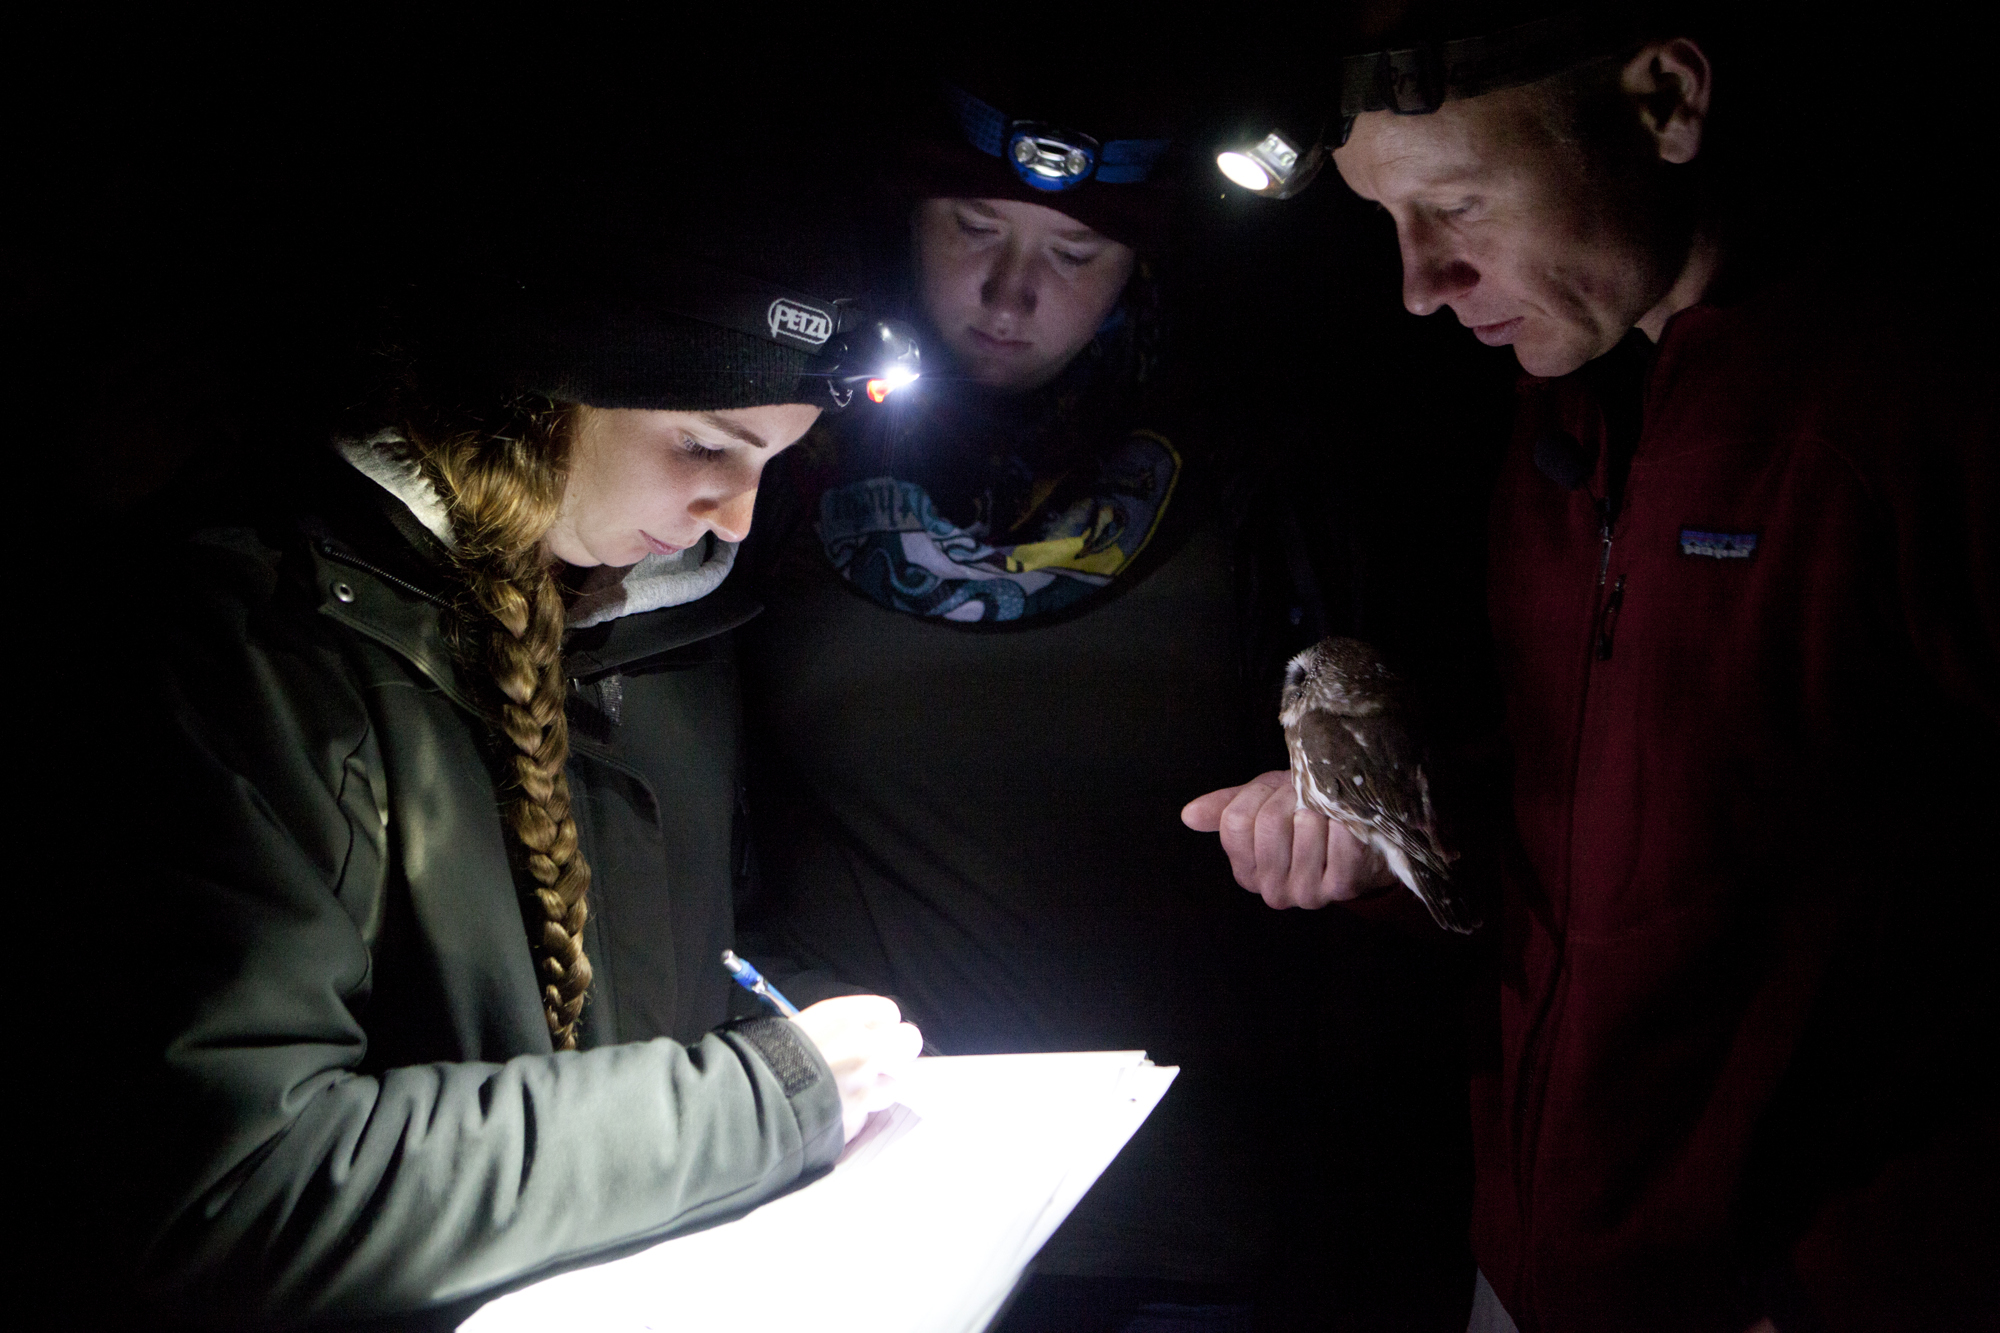 Biodiversity Research Institute's Patrick Keenan, left, works with interns to record data during Northern Saw-whet Owl banding operations at Suckfish Brook in Falmouth, Maine on October 14.